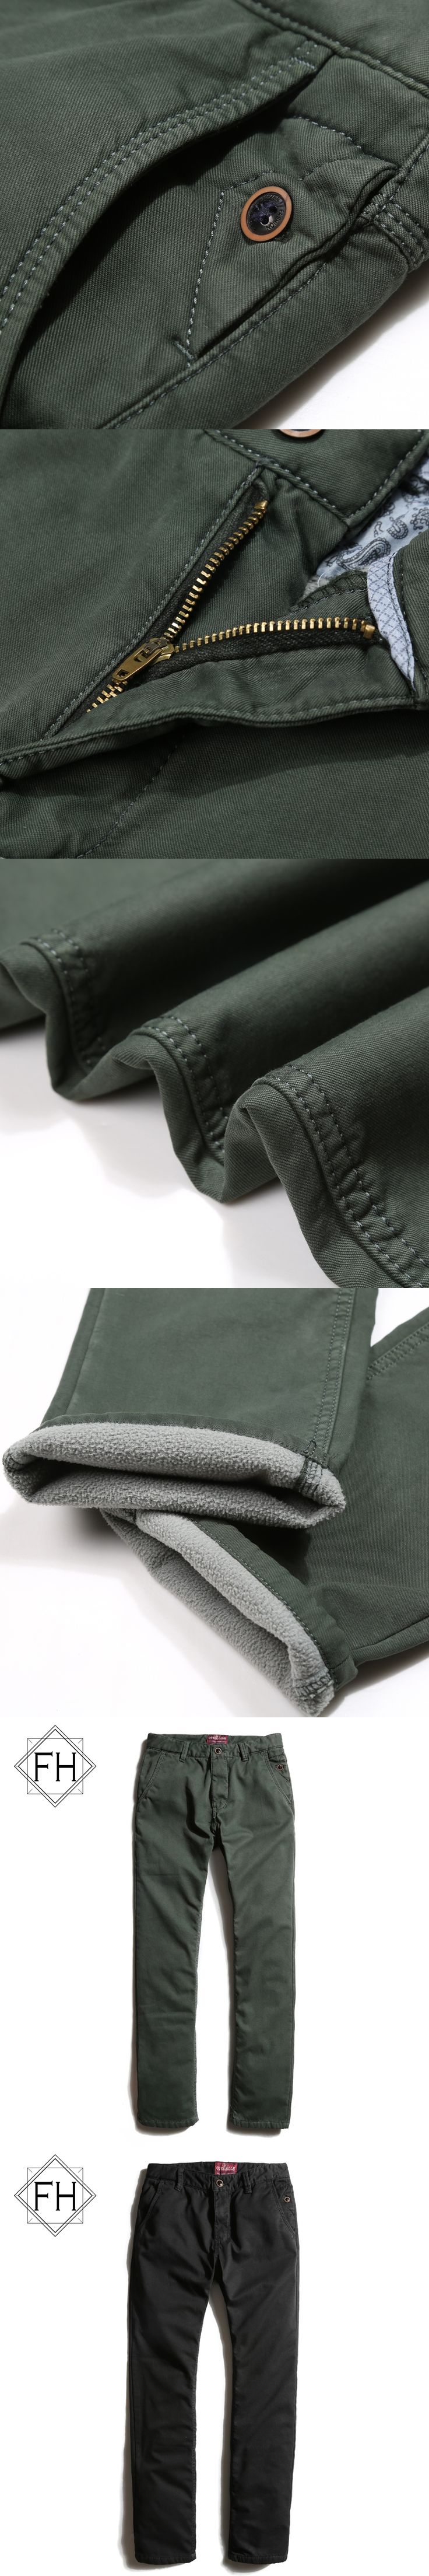 FuHao 2017 New Arrival Men Casual Straight Fleeced Pants Winter Warm Inside Cargo Pant For Man Cotton Trousers Male, 3263E